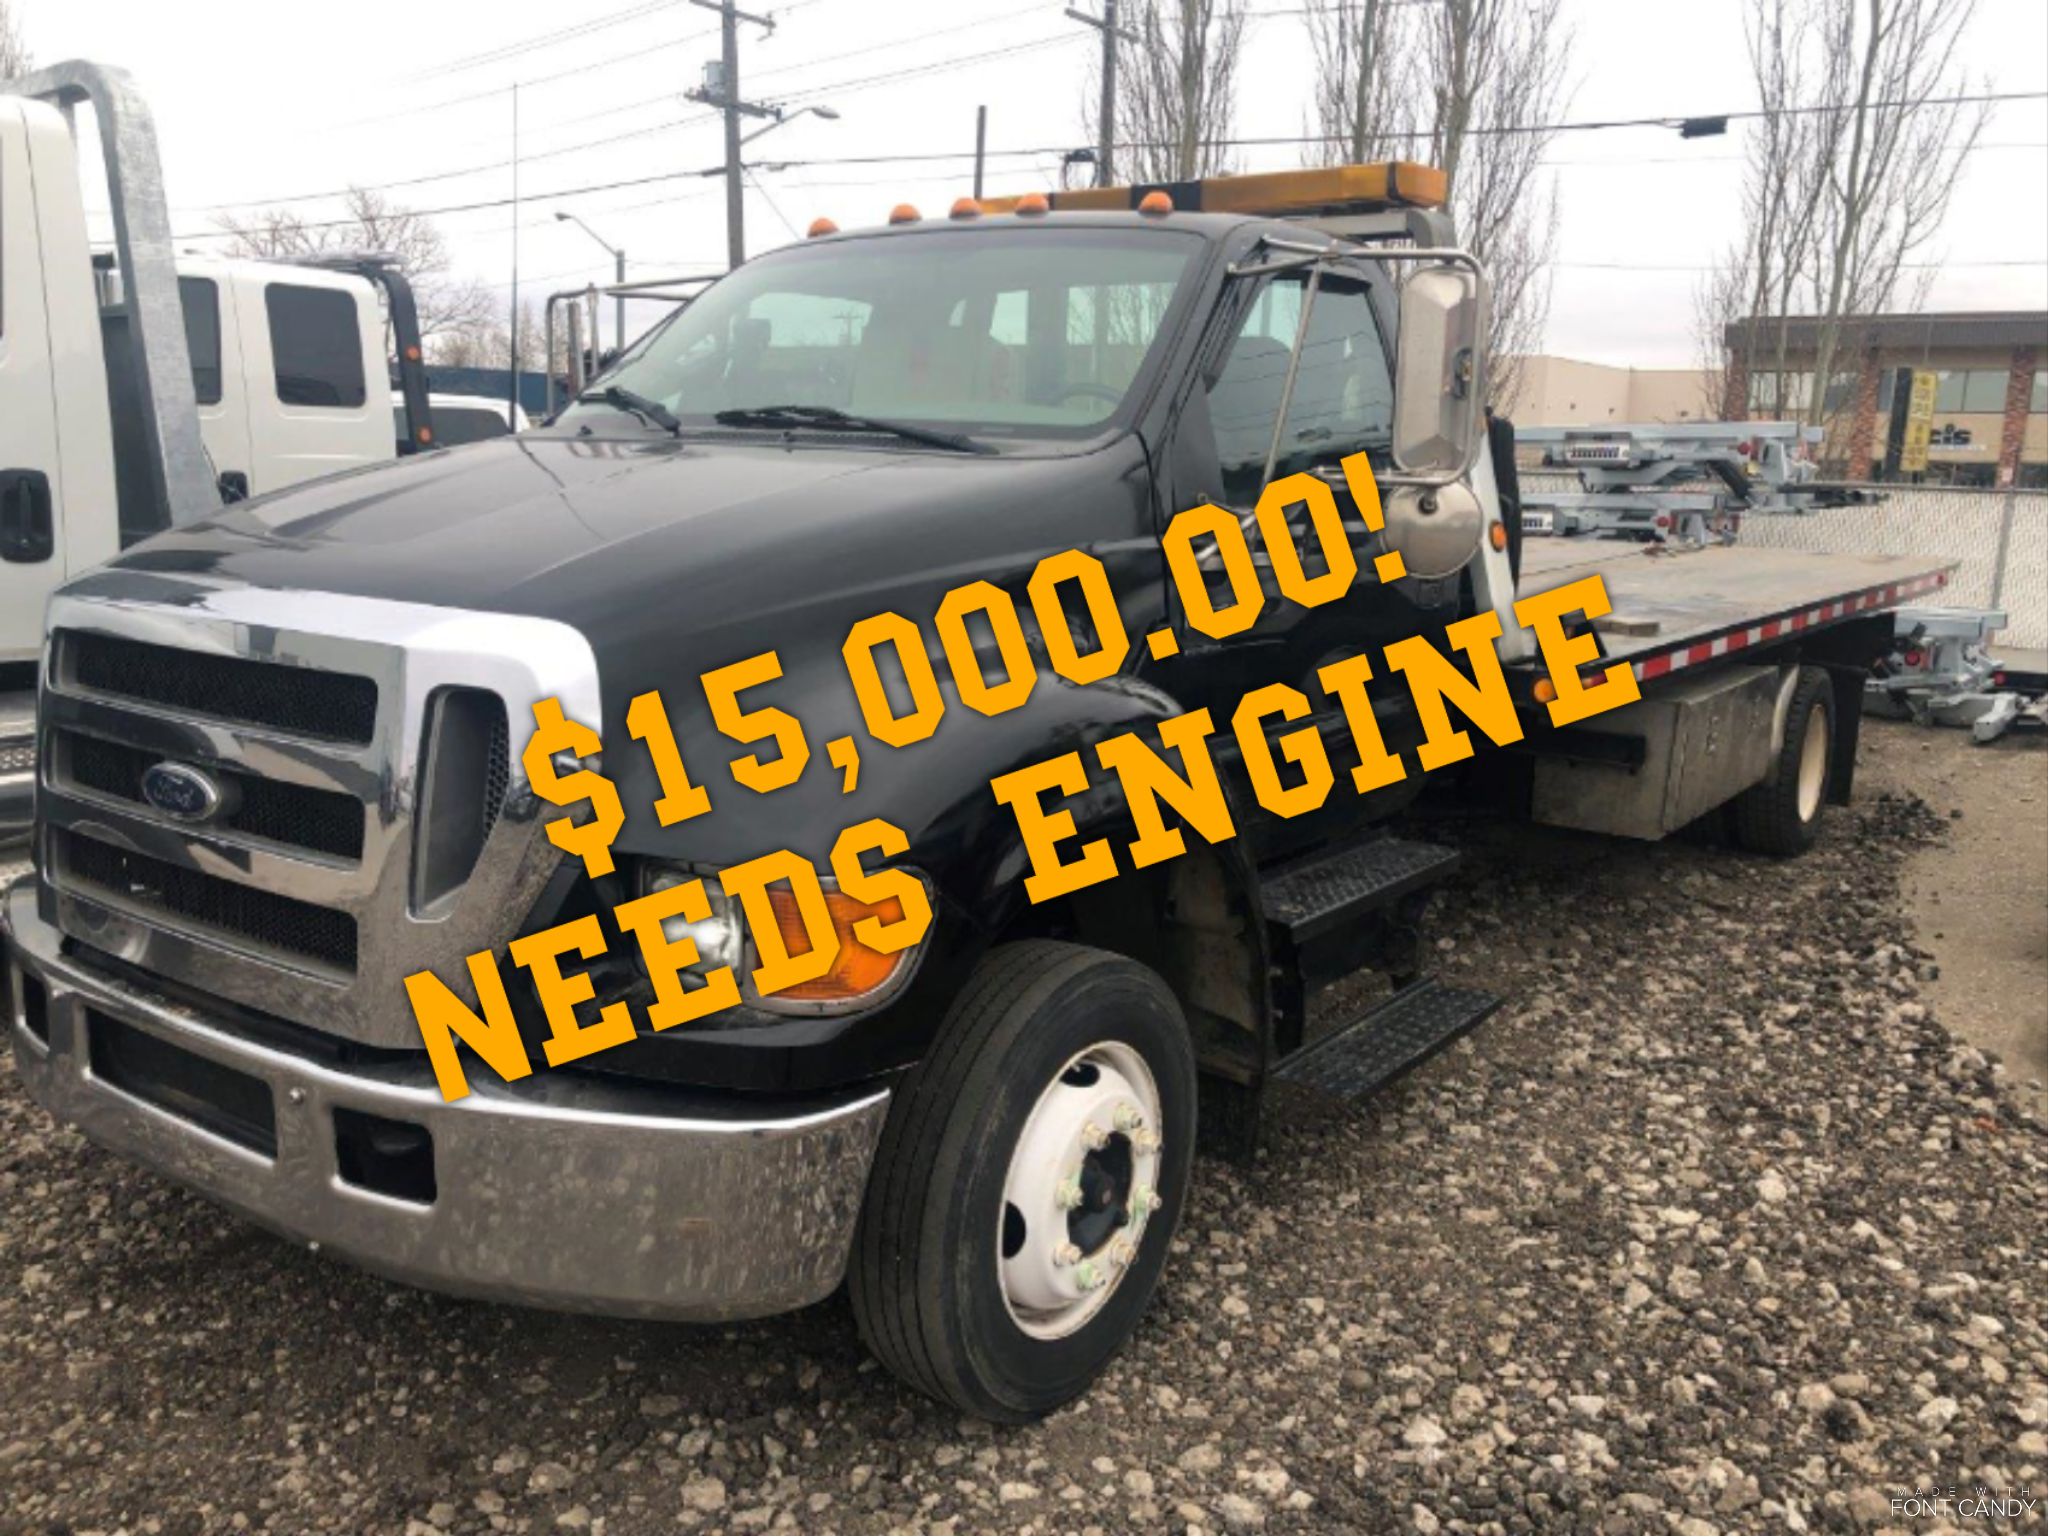 2004 FORD F-650 W/ CAR CARRIER  ** MECHANICS SPECIAL*NEEDS ENGINE*  STOCK#2287